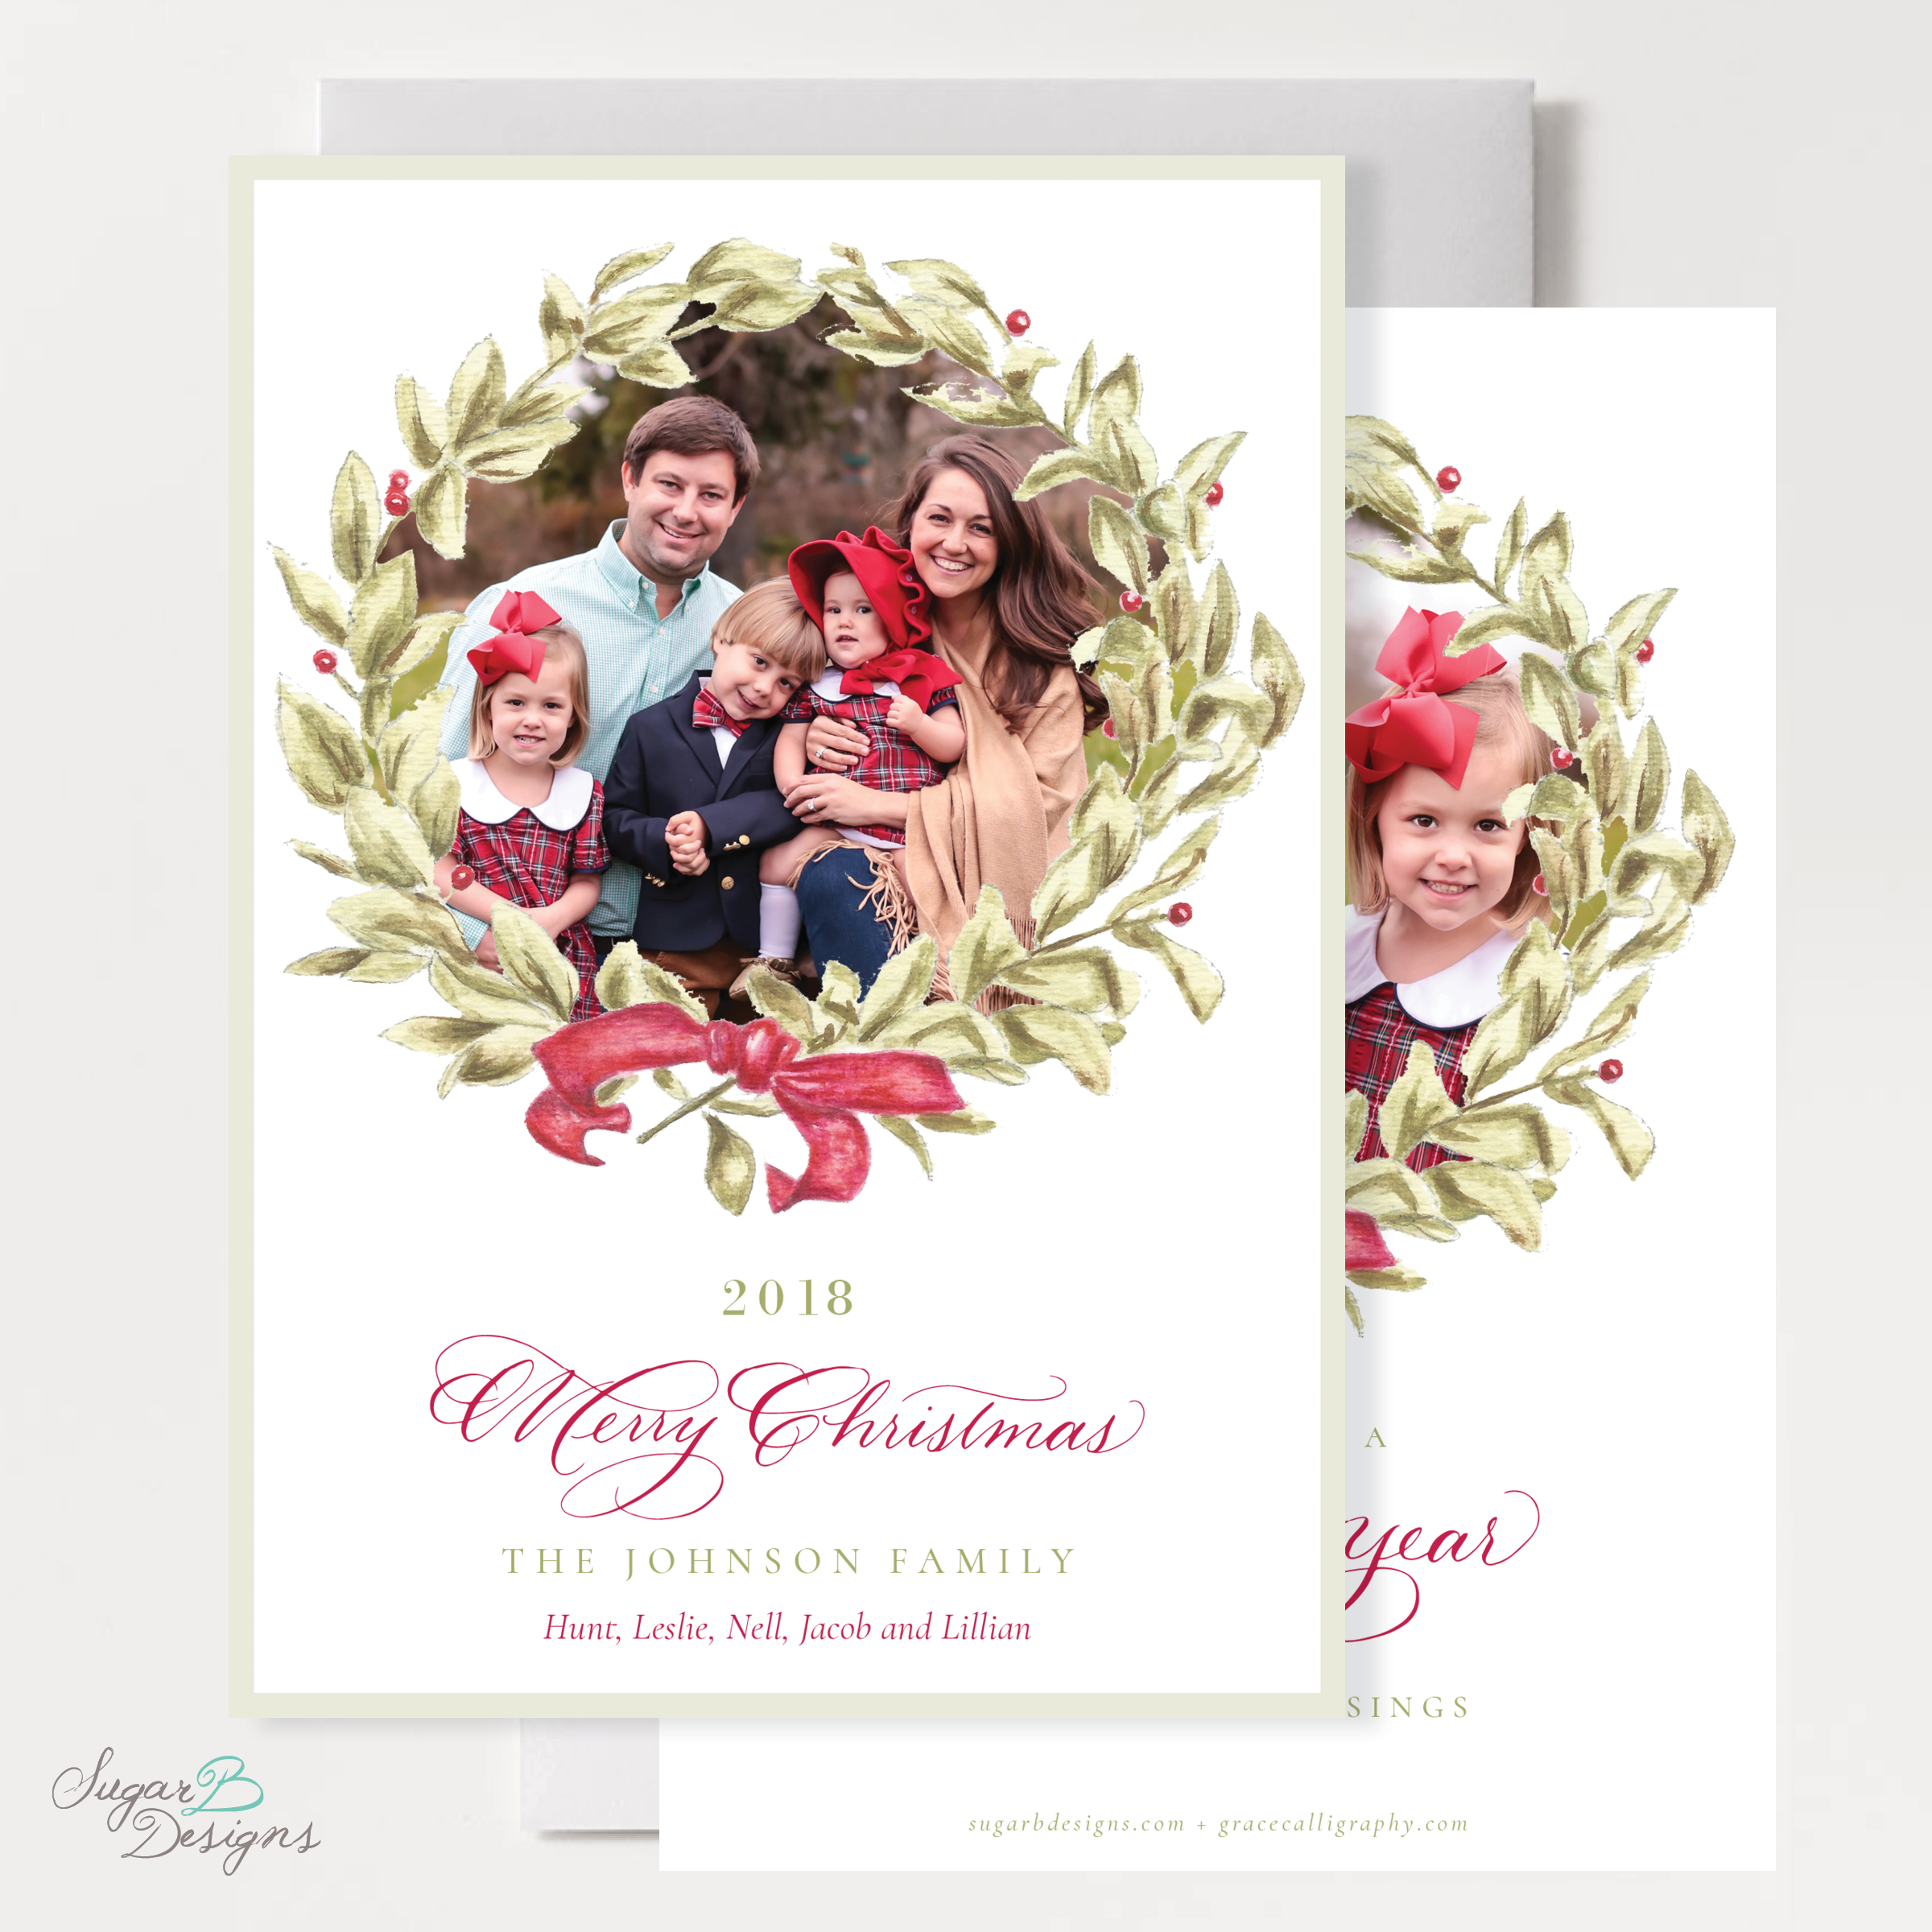 Meryl Wreath Red Christmas Card front + back by Sugar B Designs.png